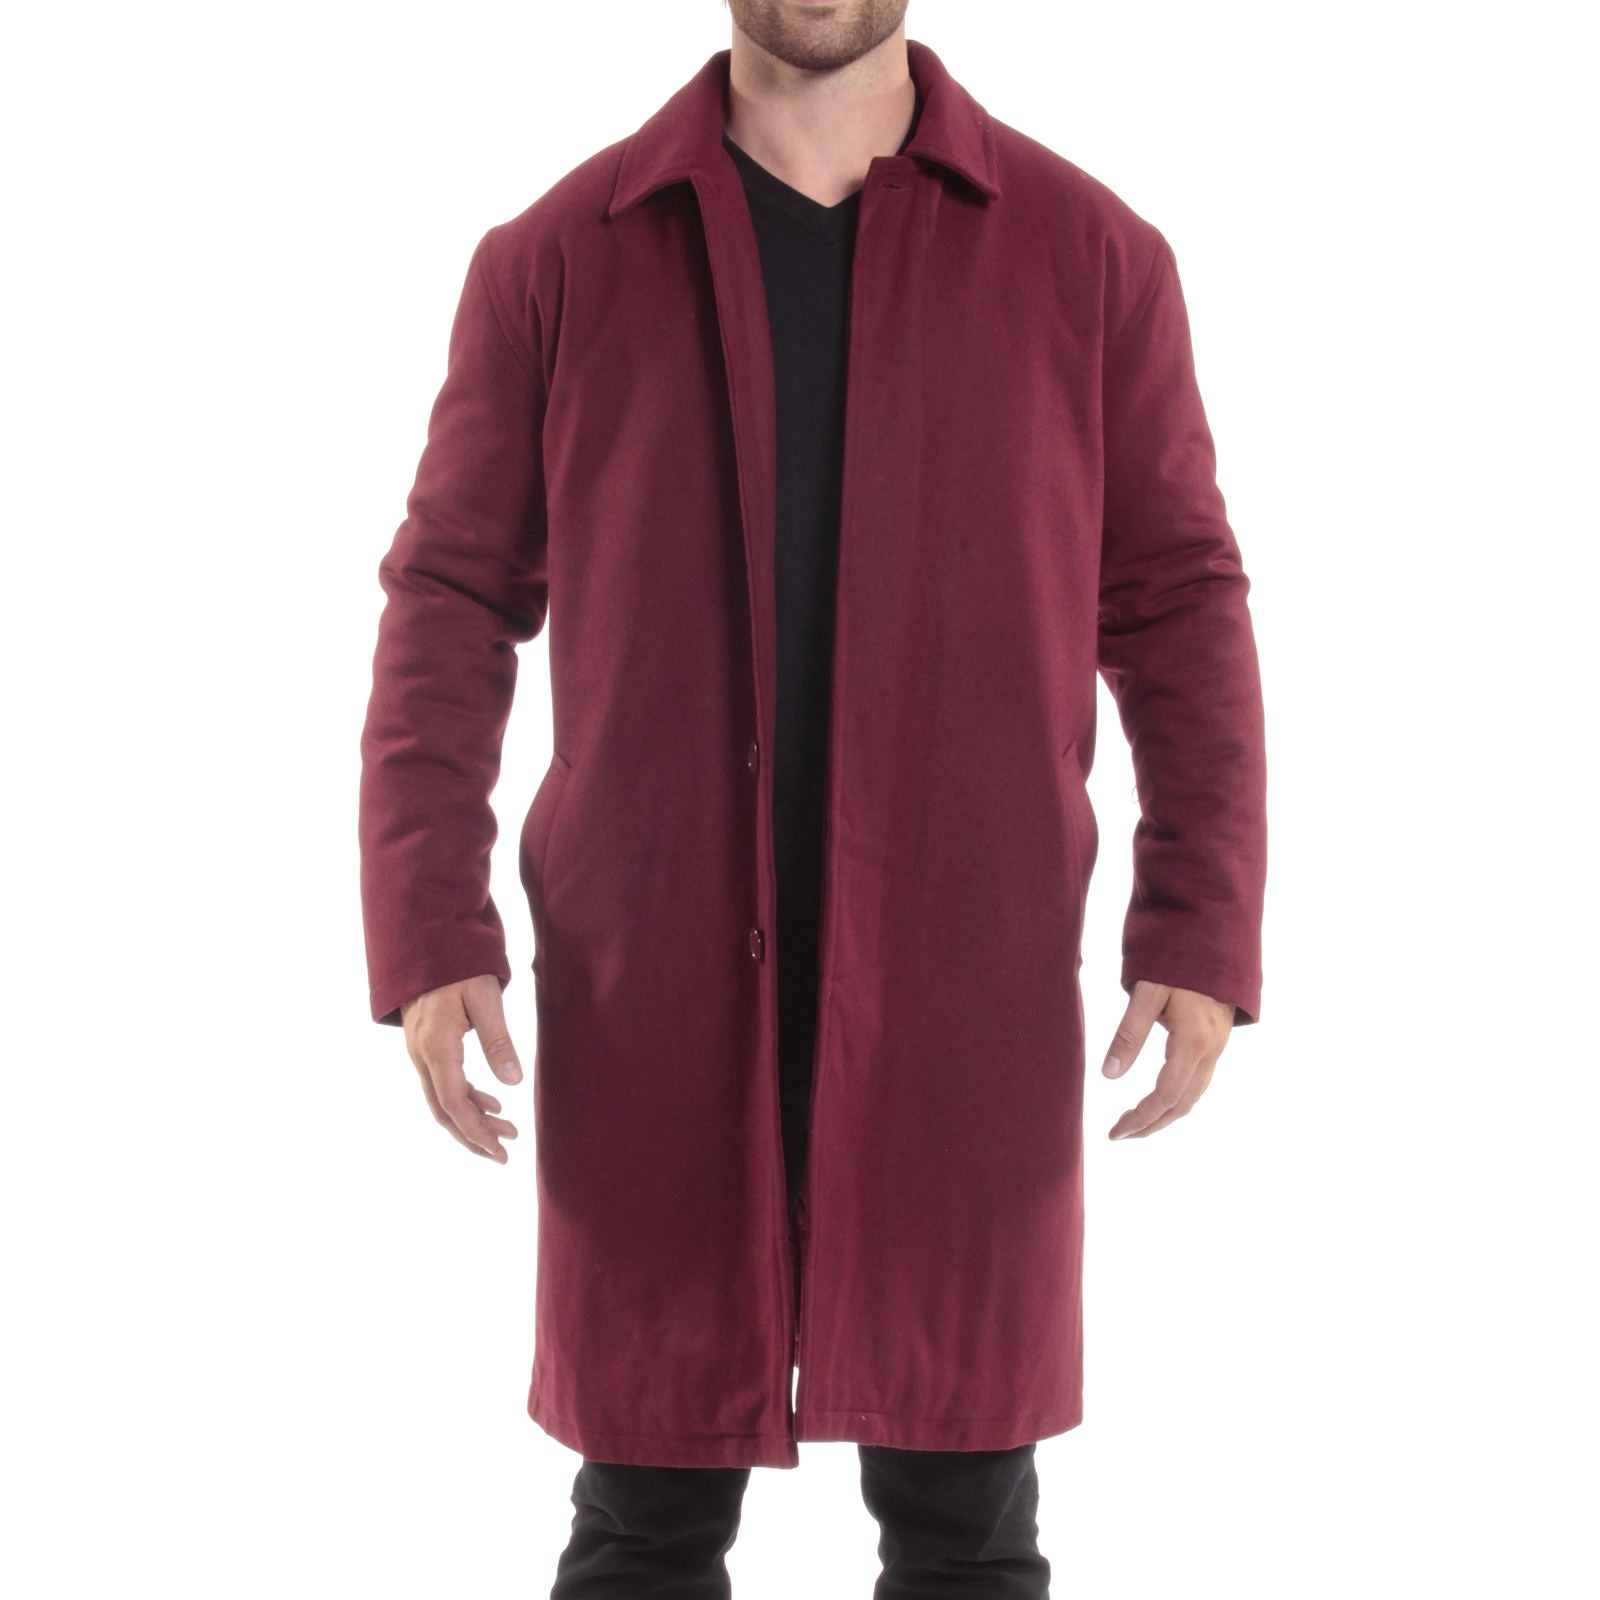 Alpine-Swiss-Mens-Zach-Knee-Length-Jacket-Top-Coat-Trench-Wool-Blend-Overcoat thumbnail 29